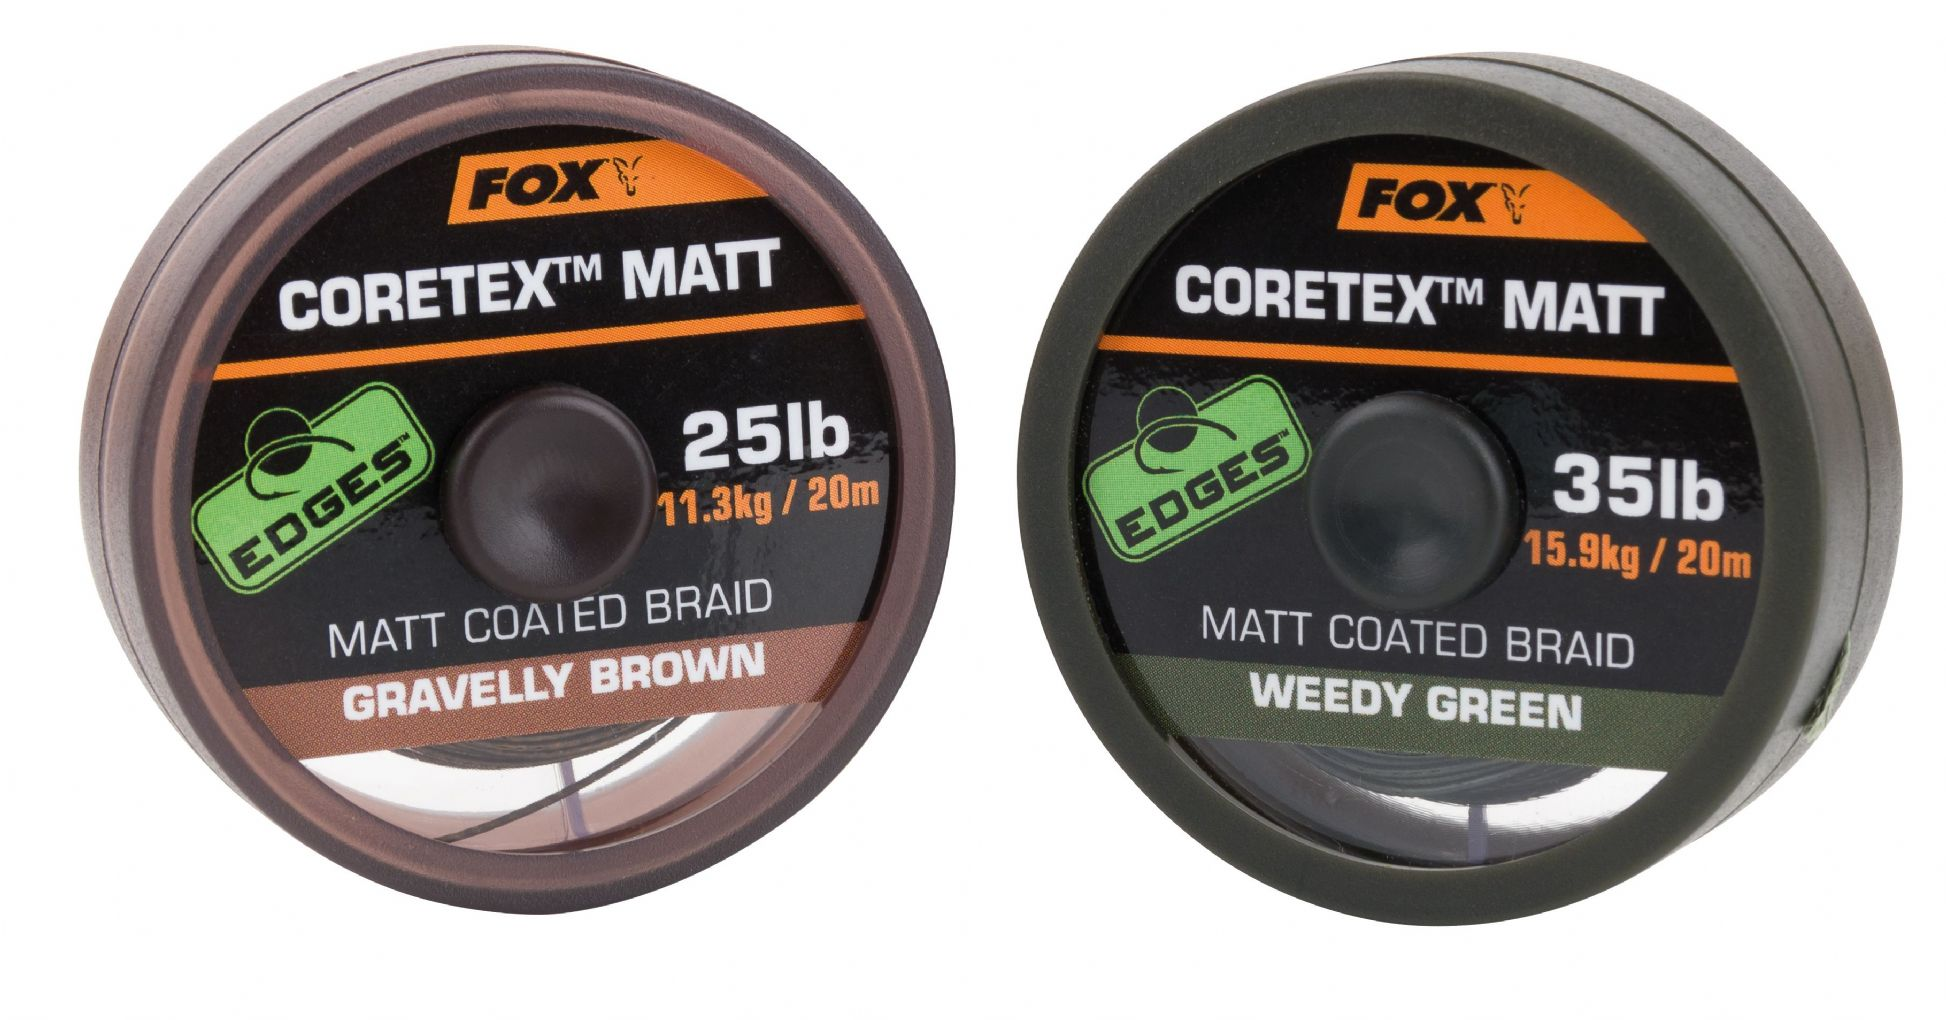 fox-coretex-matt-3833-p